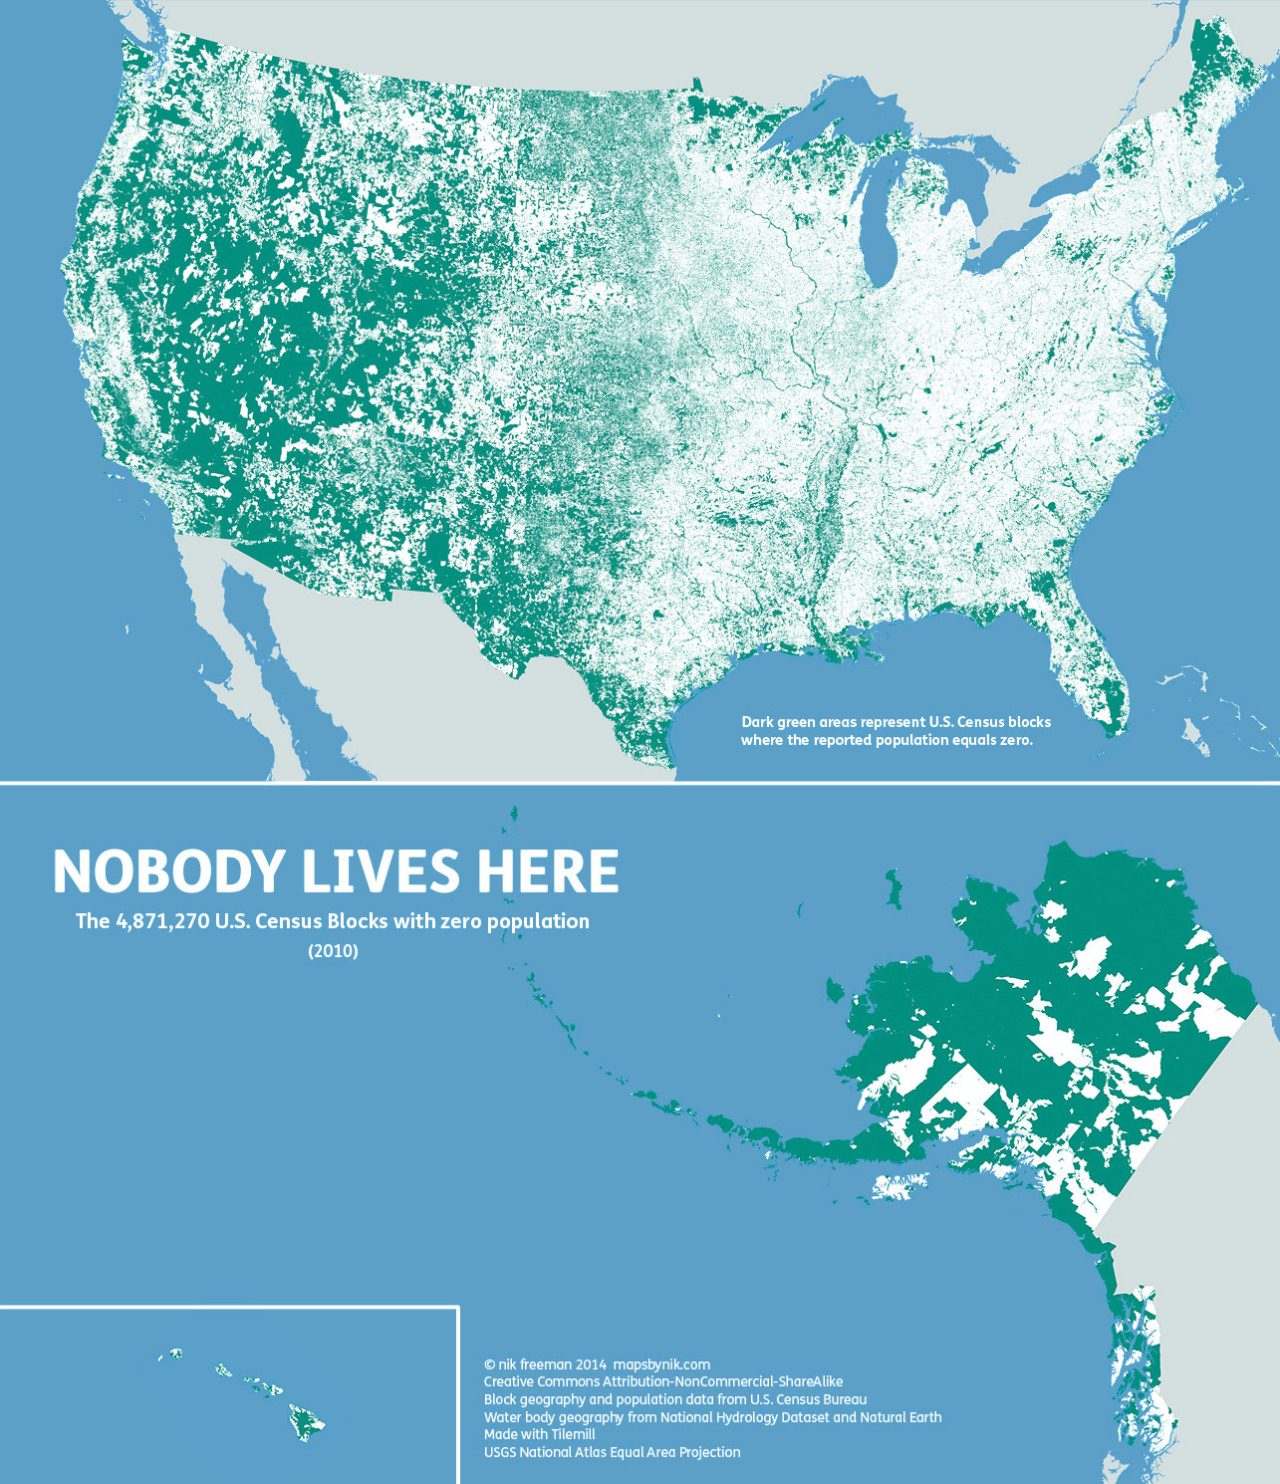 hight resolution of nobody lives here the nearly 5 million census blocks with zero population